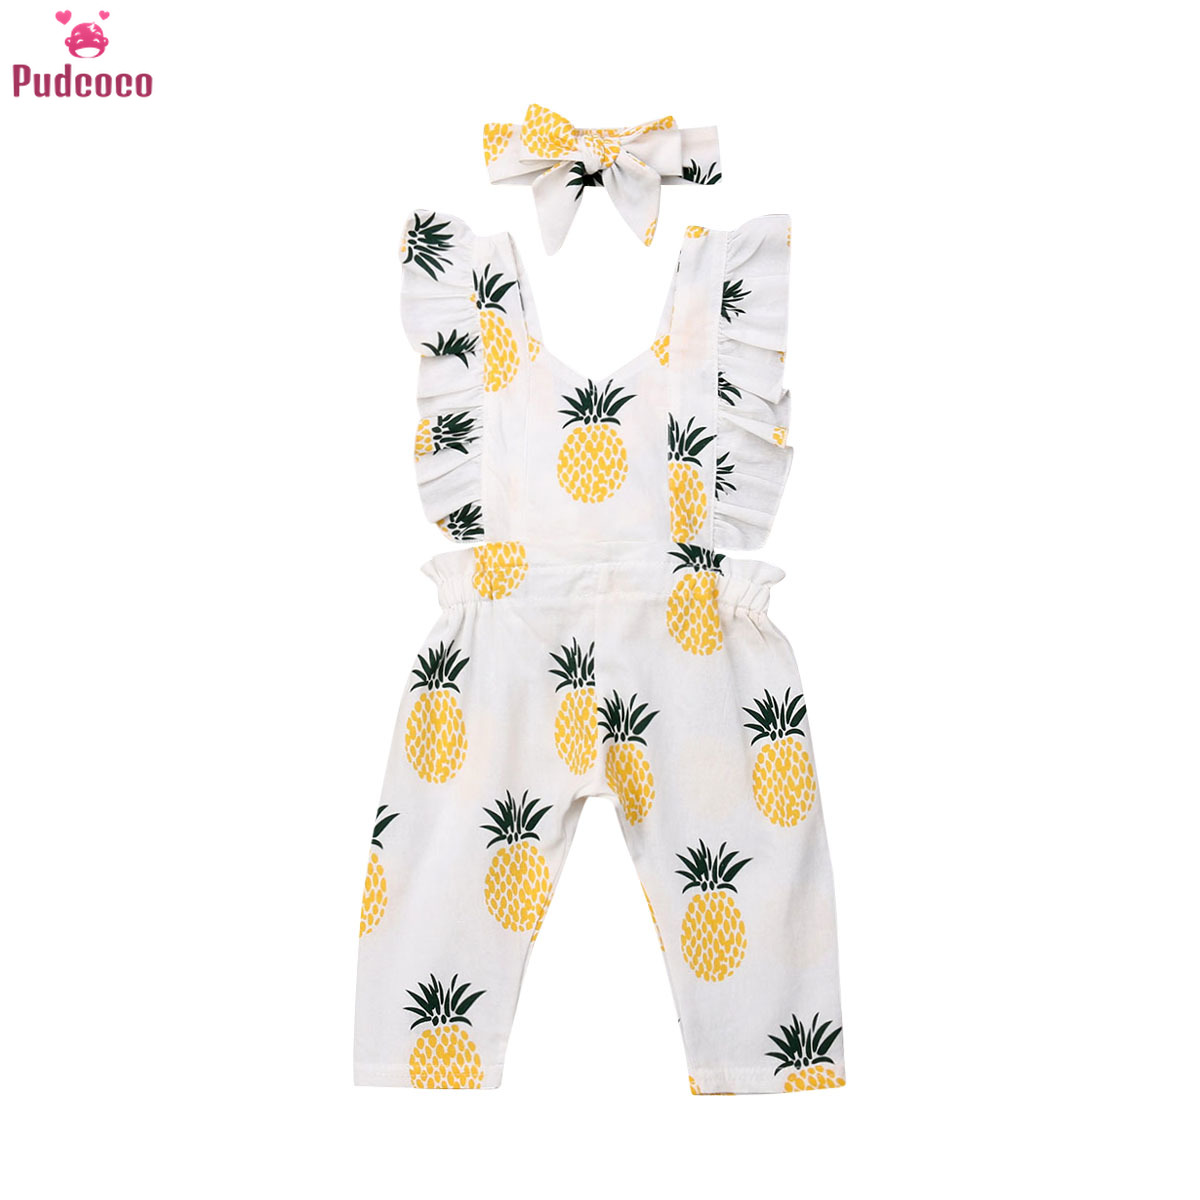 Newborn Baby Girl Pineapple Clothes Ruffle Romper Jumpsuit Yellow Headband Holiday Summer Outfit Set Ruffle Print Outfits 0-24M